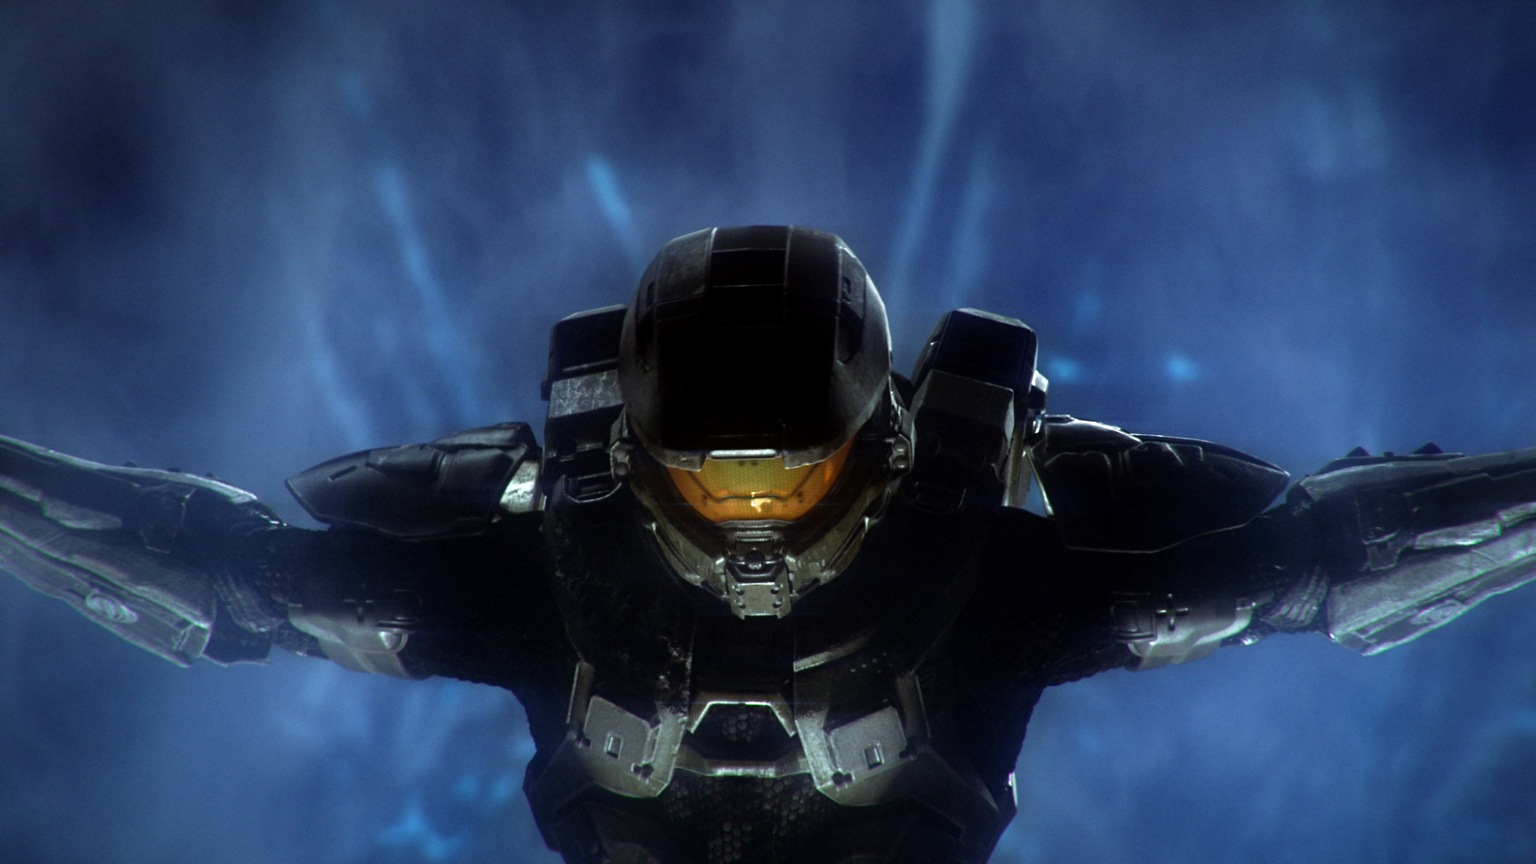 Halo 4 Launch Trailer to Premiere October 18